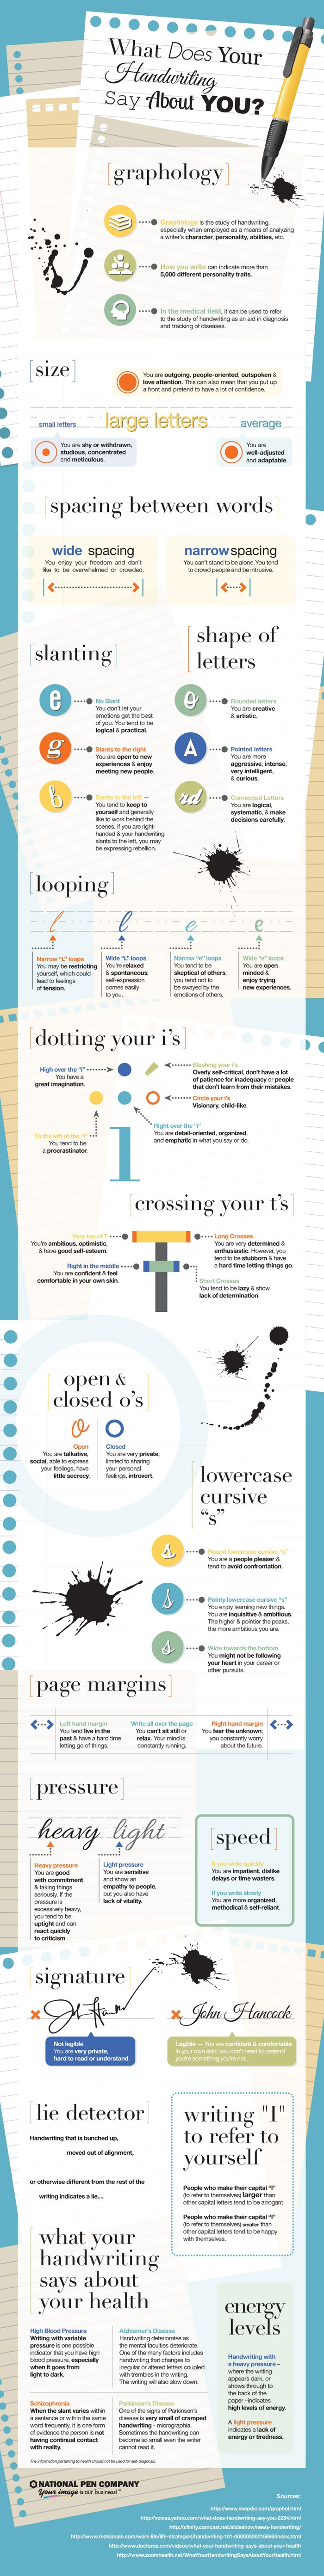 Handwriting-infographic